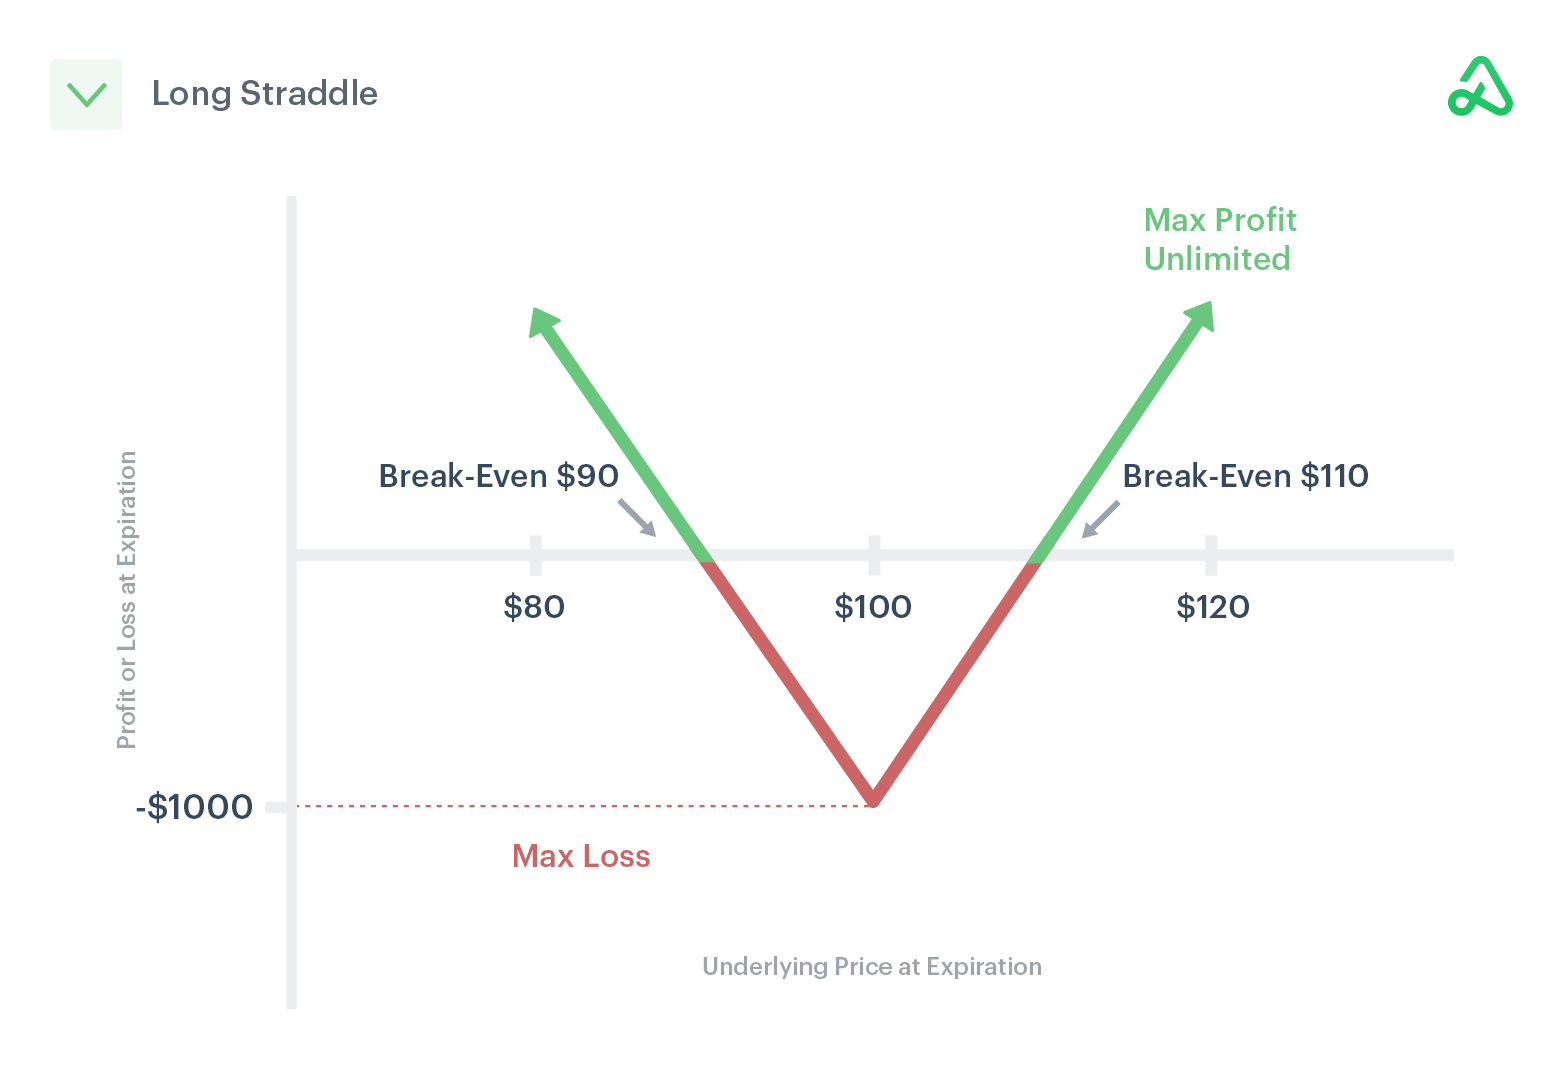 Image of long straddle payoff diagram showing max profit, max loss, and break-even points